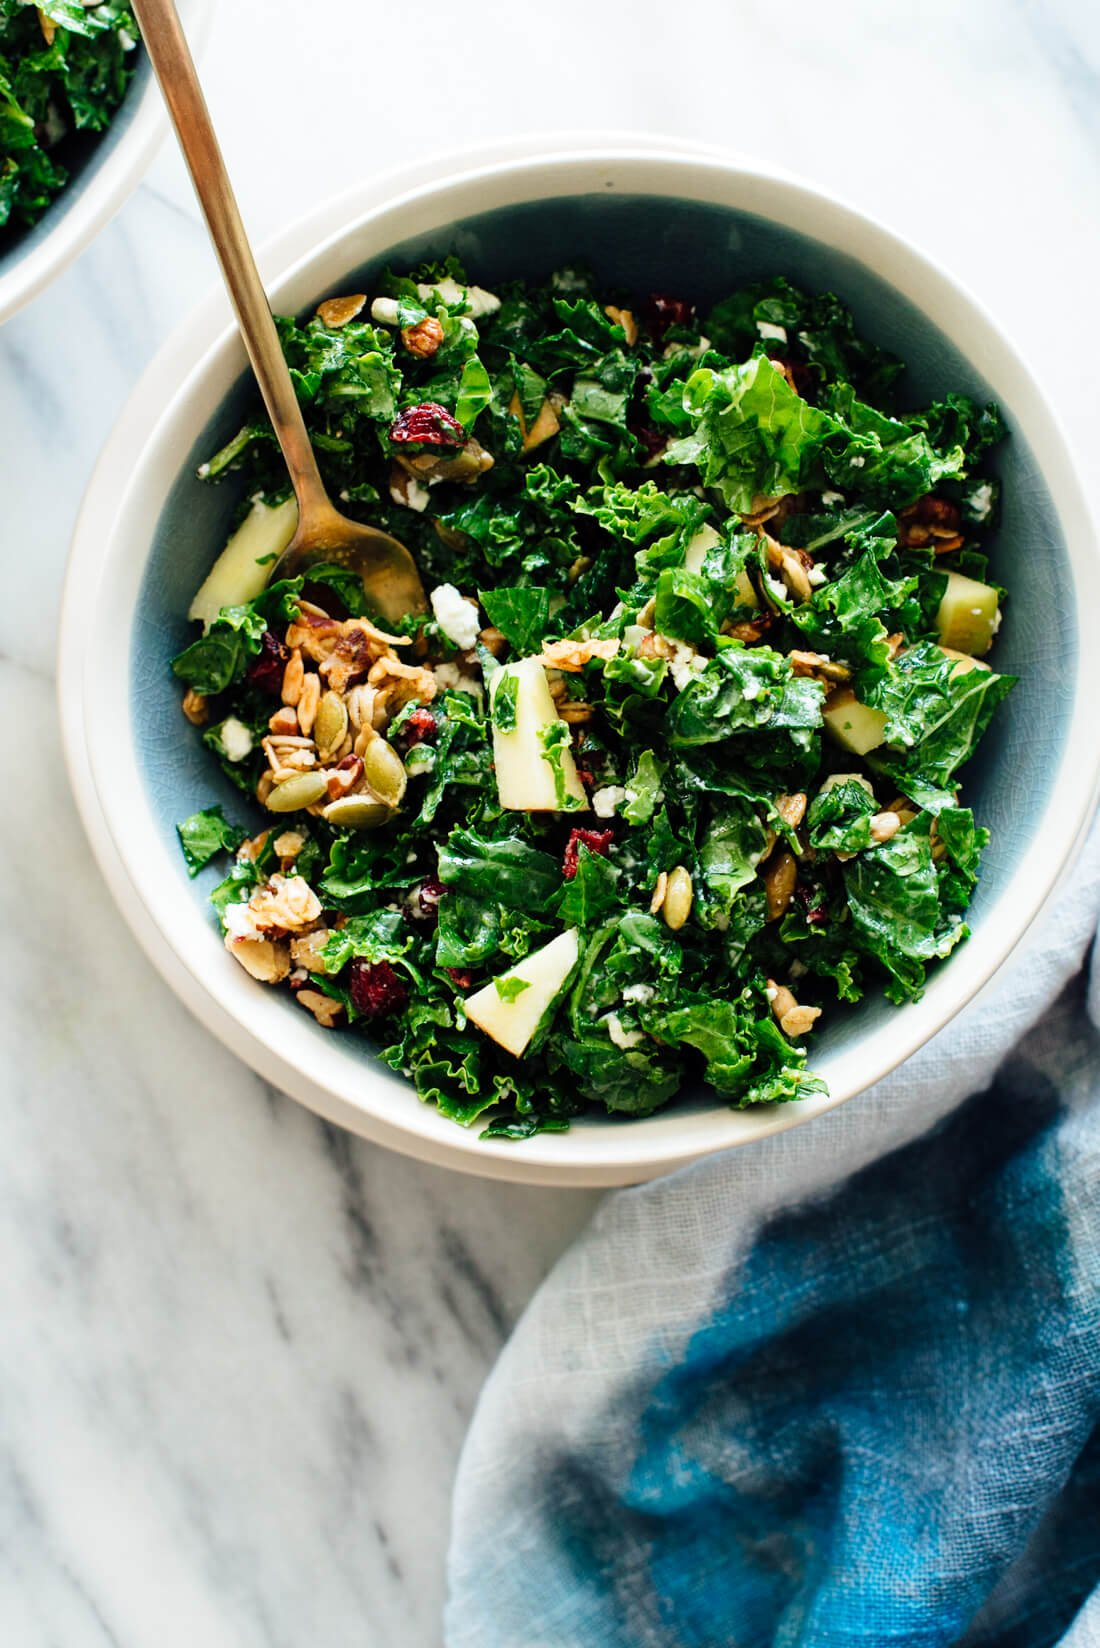 You're going to love this kale and apple salad with goat cheese, dried cranberries, and granola croutons!